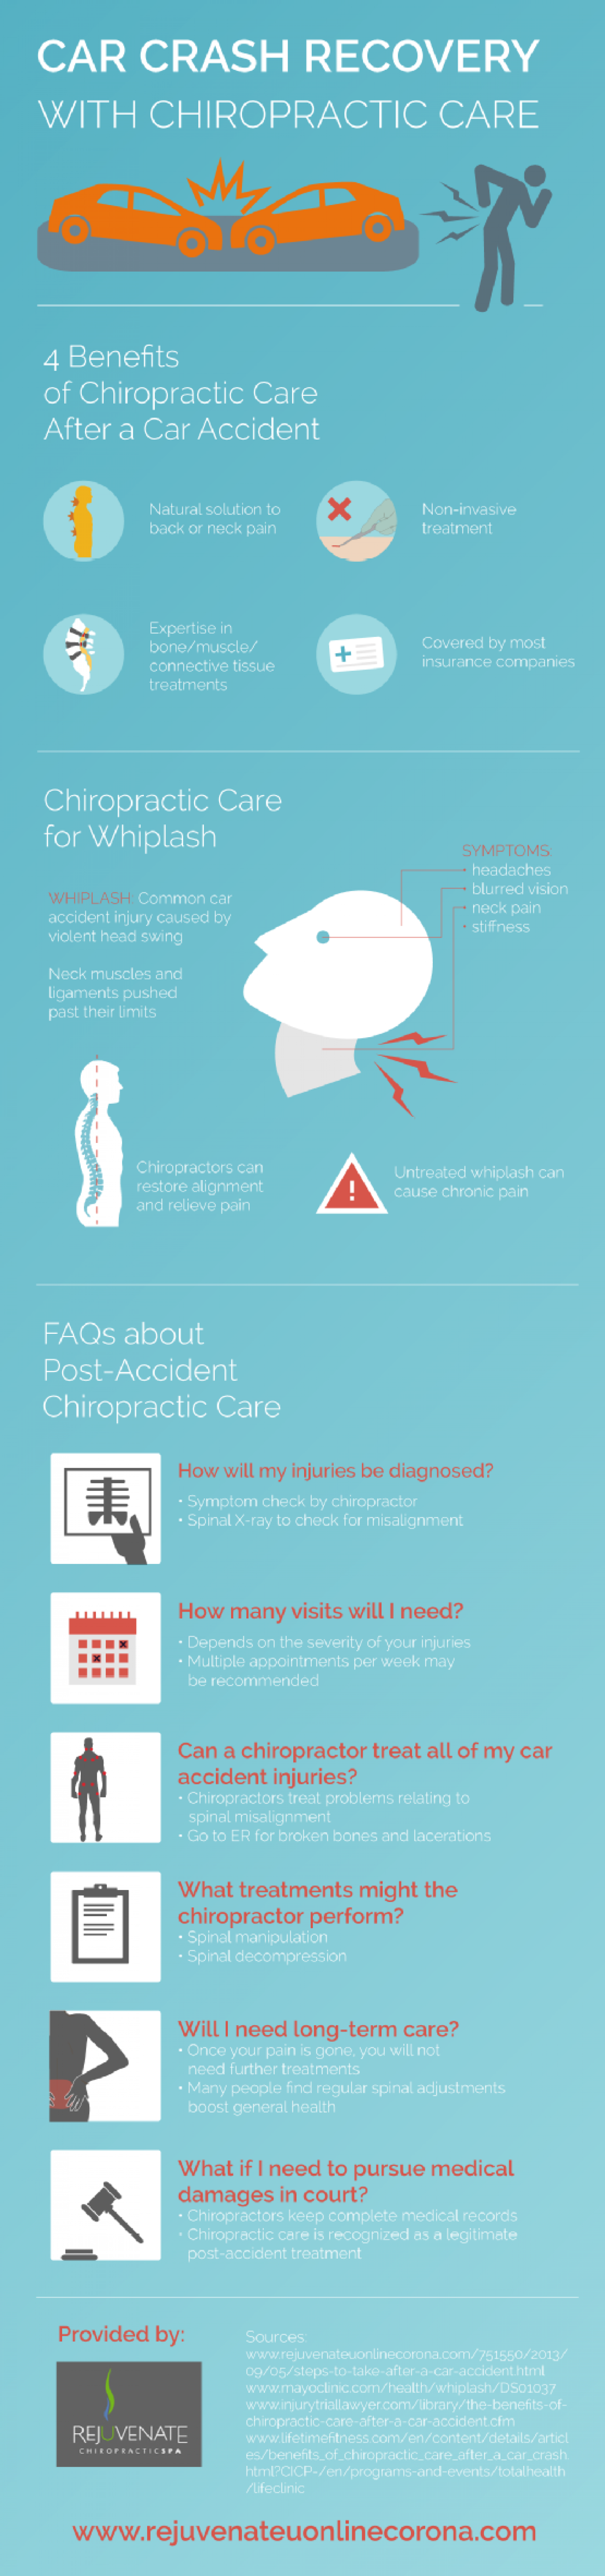 Car Crash Recovery with Chiropractic Care Infographic